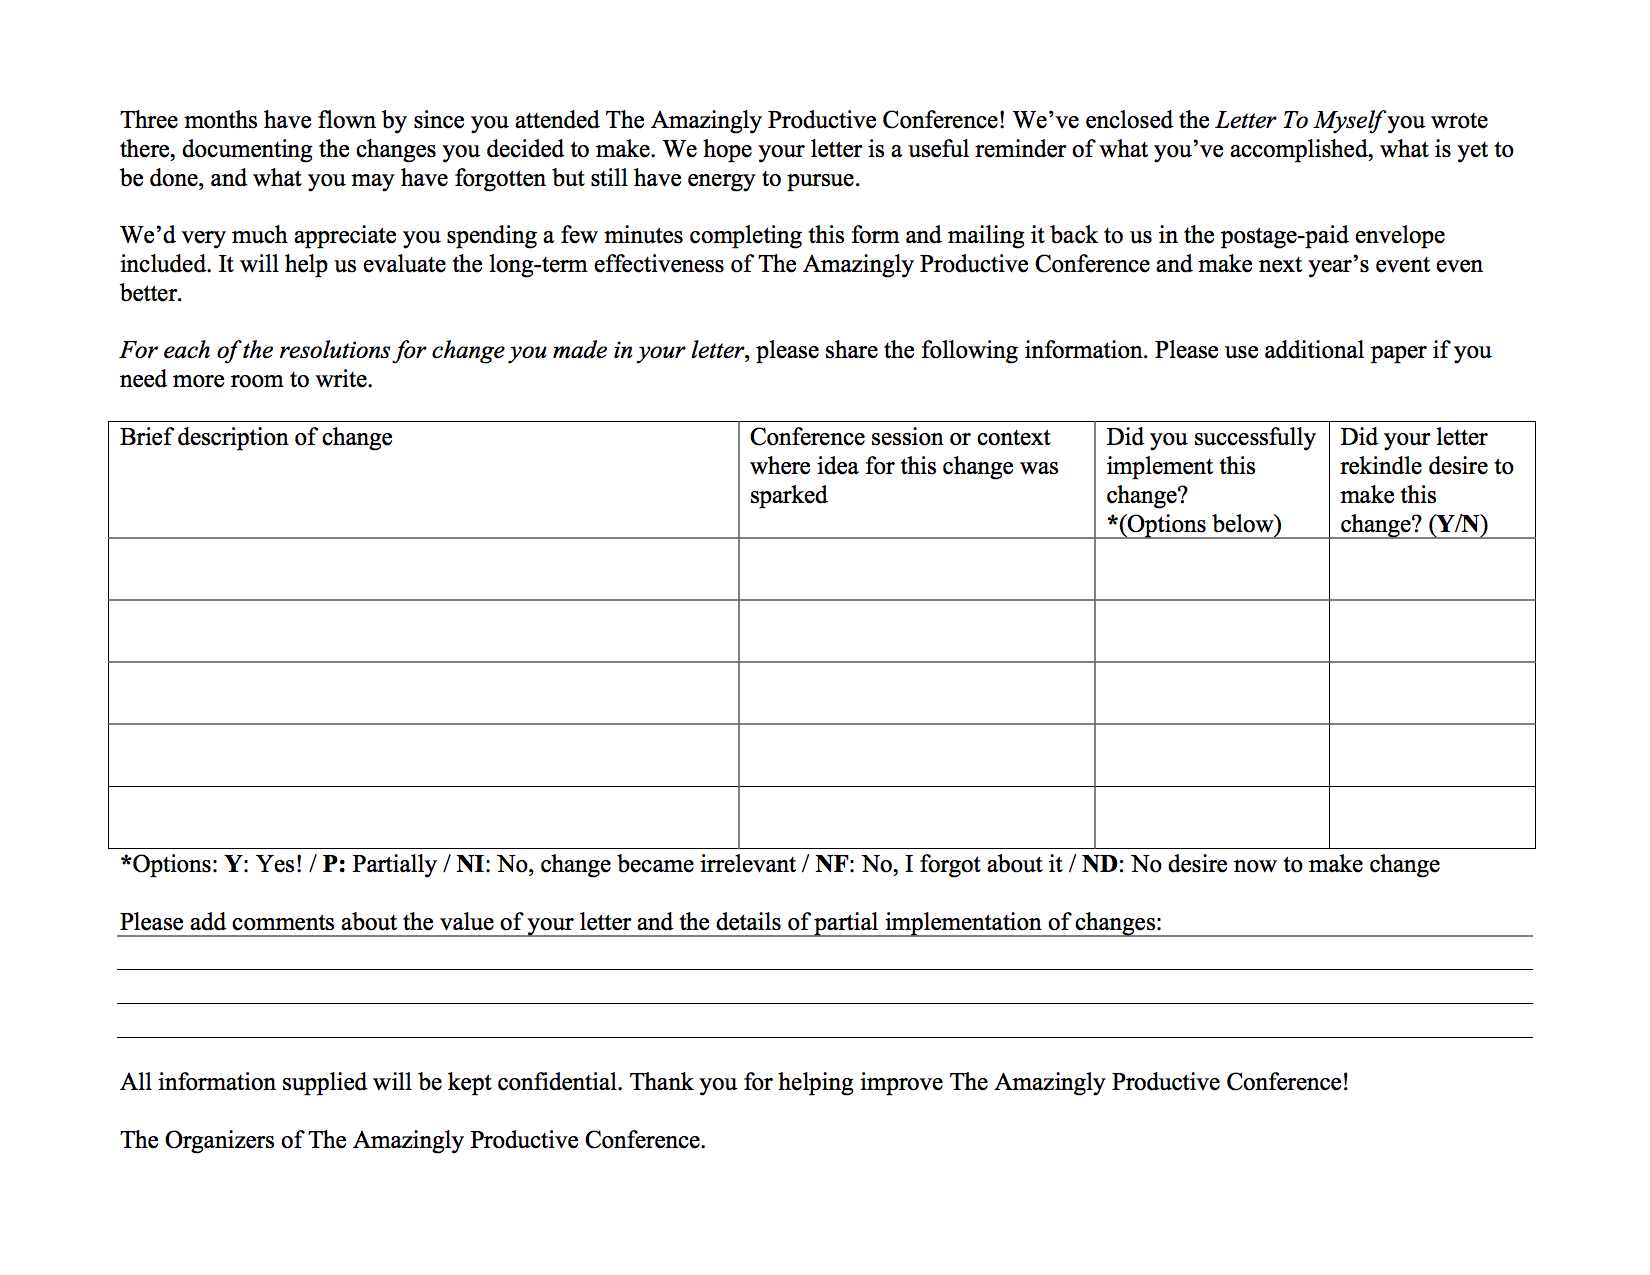 Beautiful Sample Feedback Form To Be Included In The A Letter To Myself Envelope In Meeting Feedback Form Template